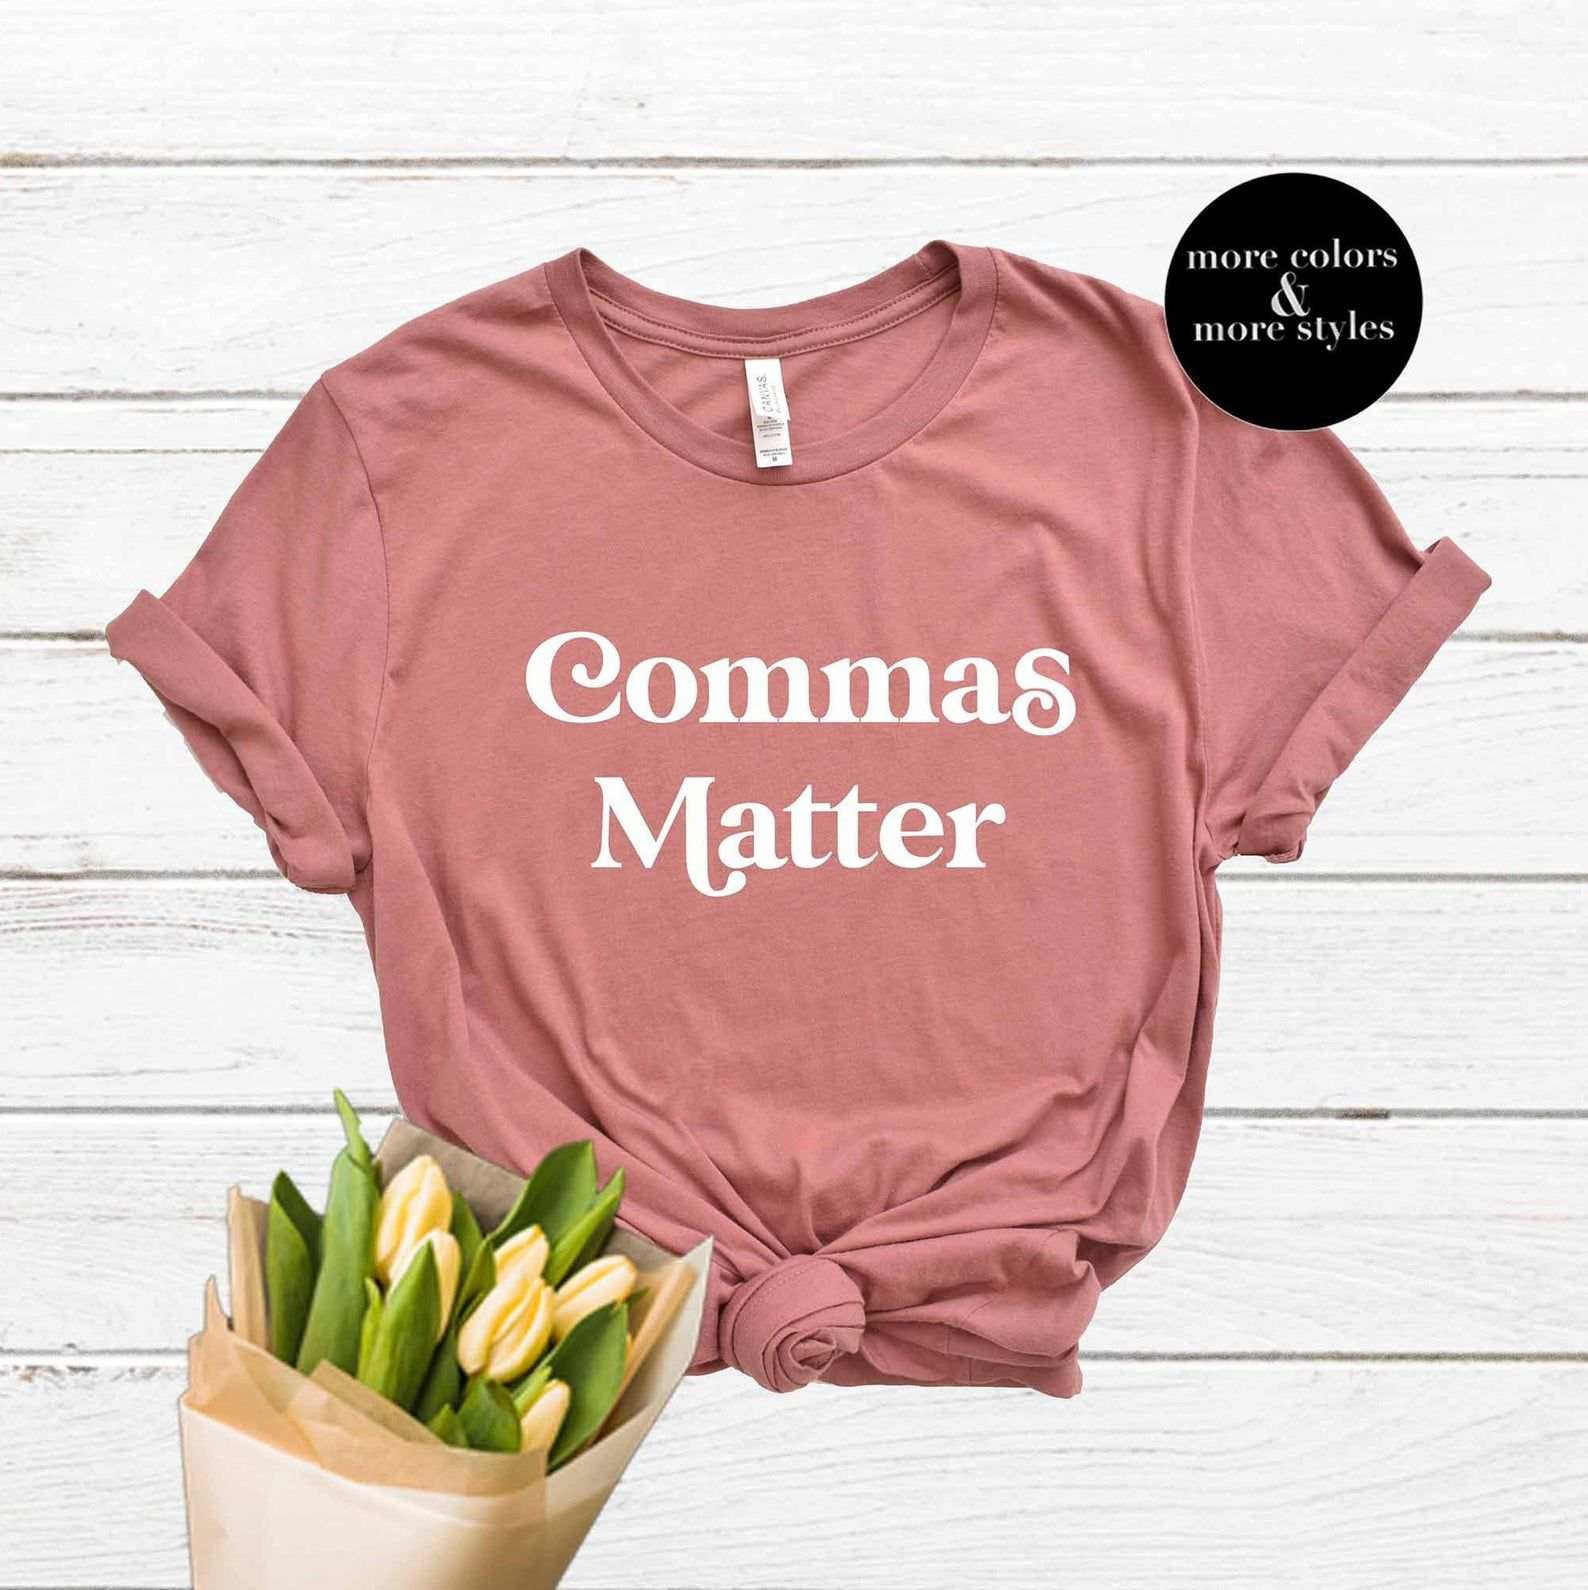 """A pink shirt that says """"Commas matter"""". The small black text box reads """"more colors & more styles,"""" and there is a bouquet of flowers at the bottom of the photo."""